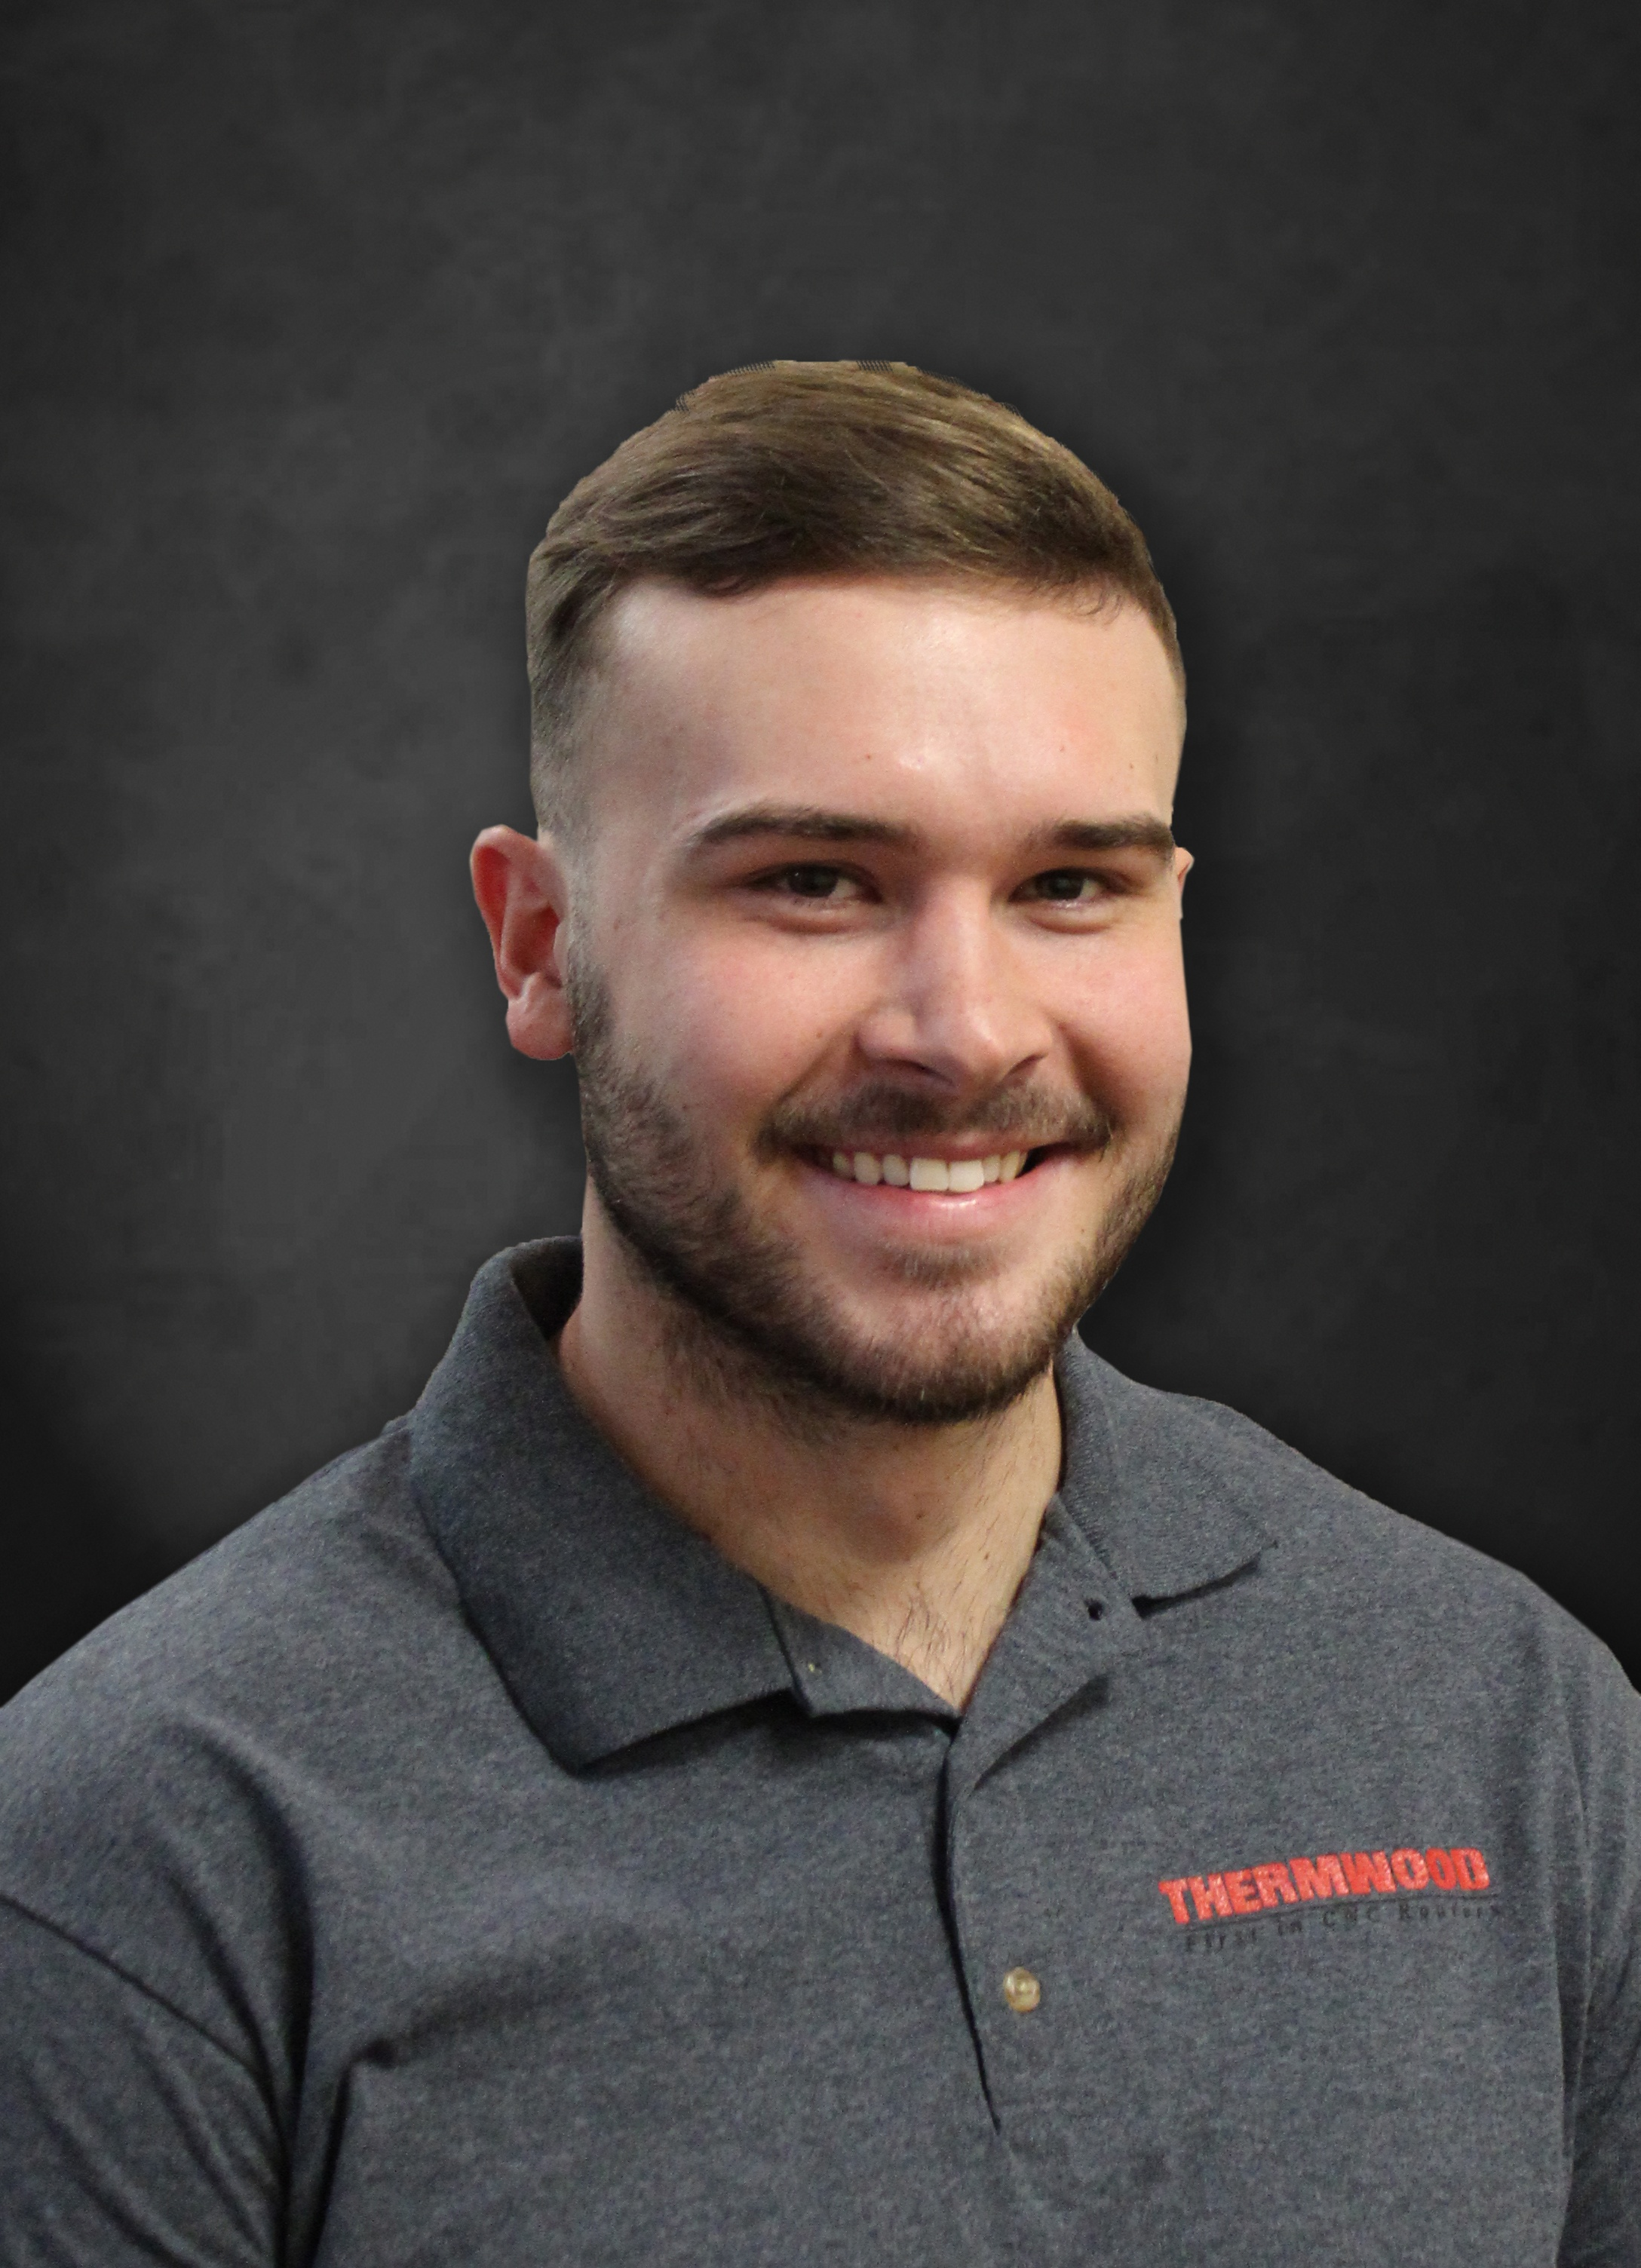 Thermwood Appoints Samuel Collins as New Demonstration Technician